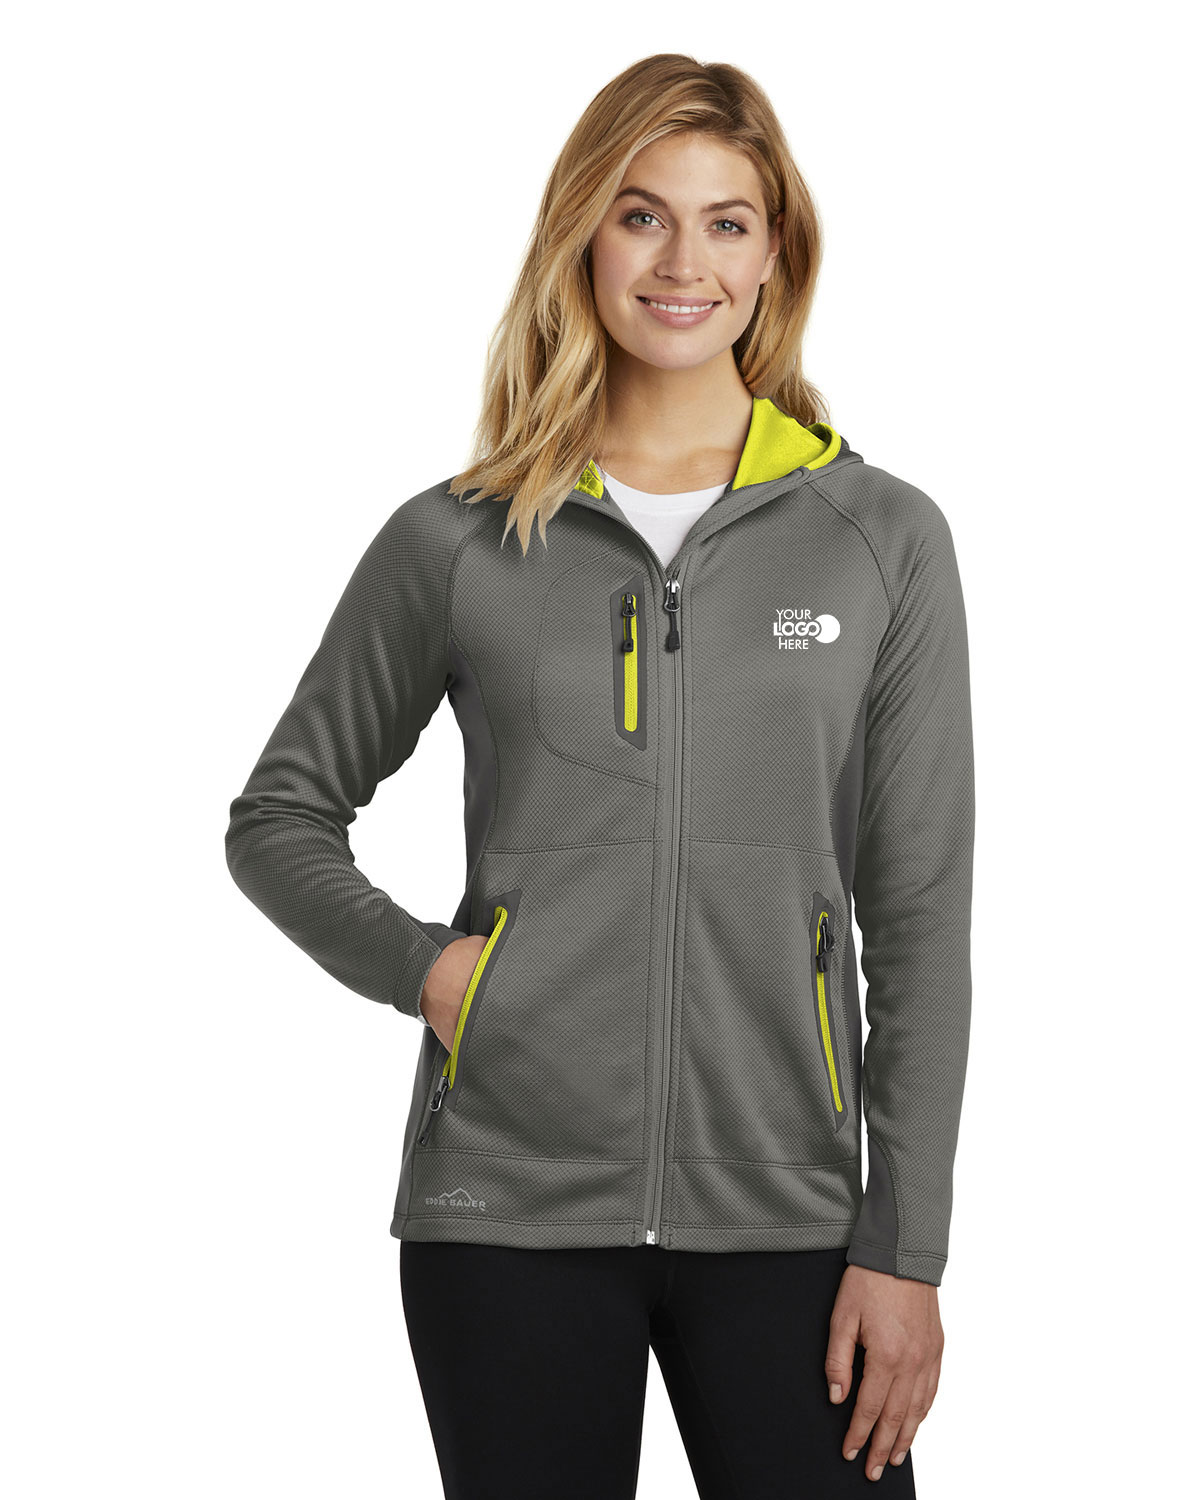 Eddie Bauer EB245 Women Sport Hooded Full-Zip Fleece Jacket